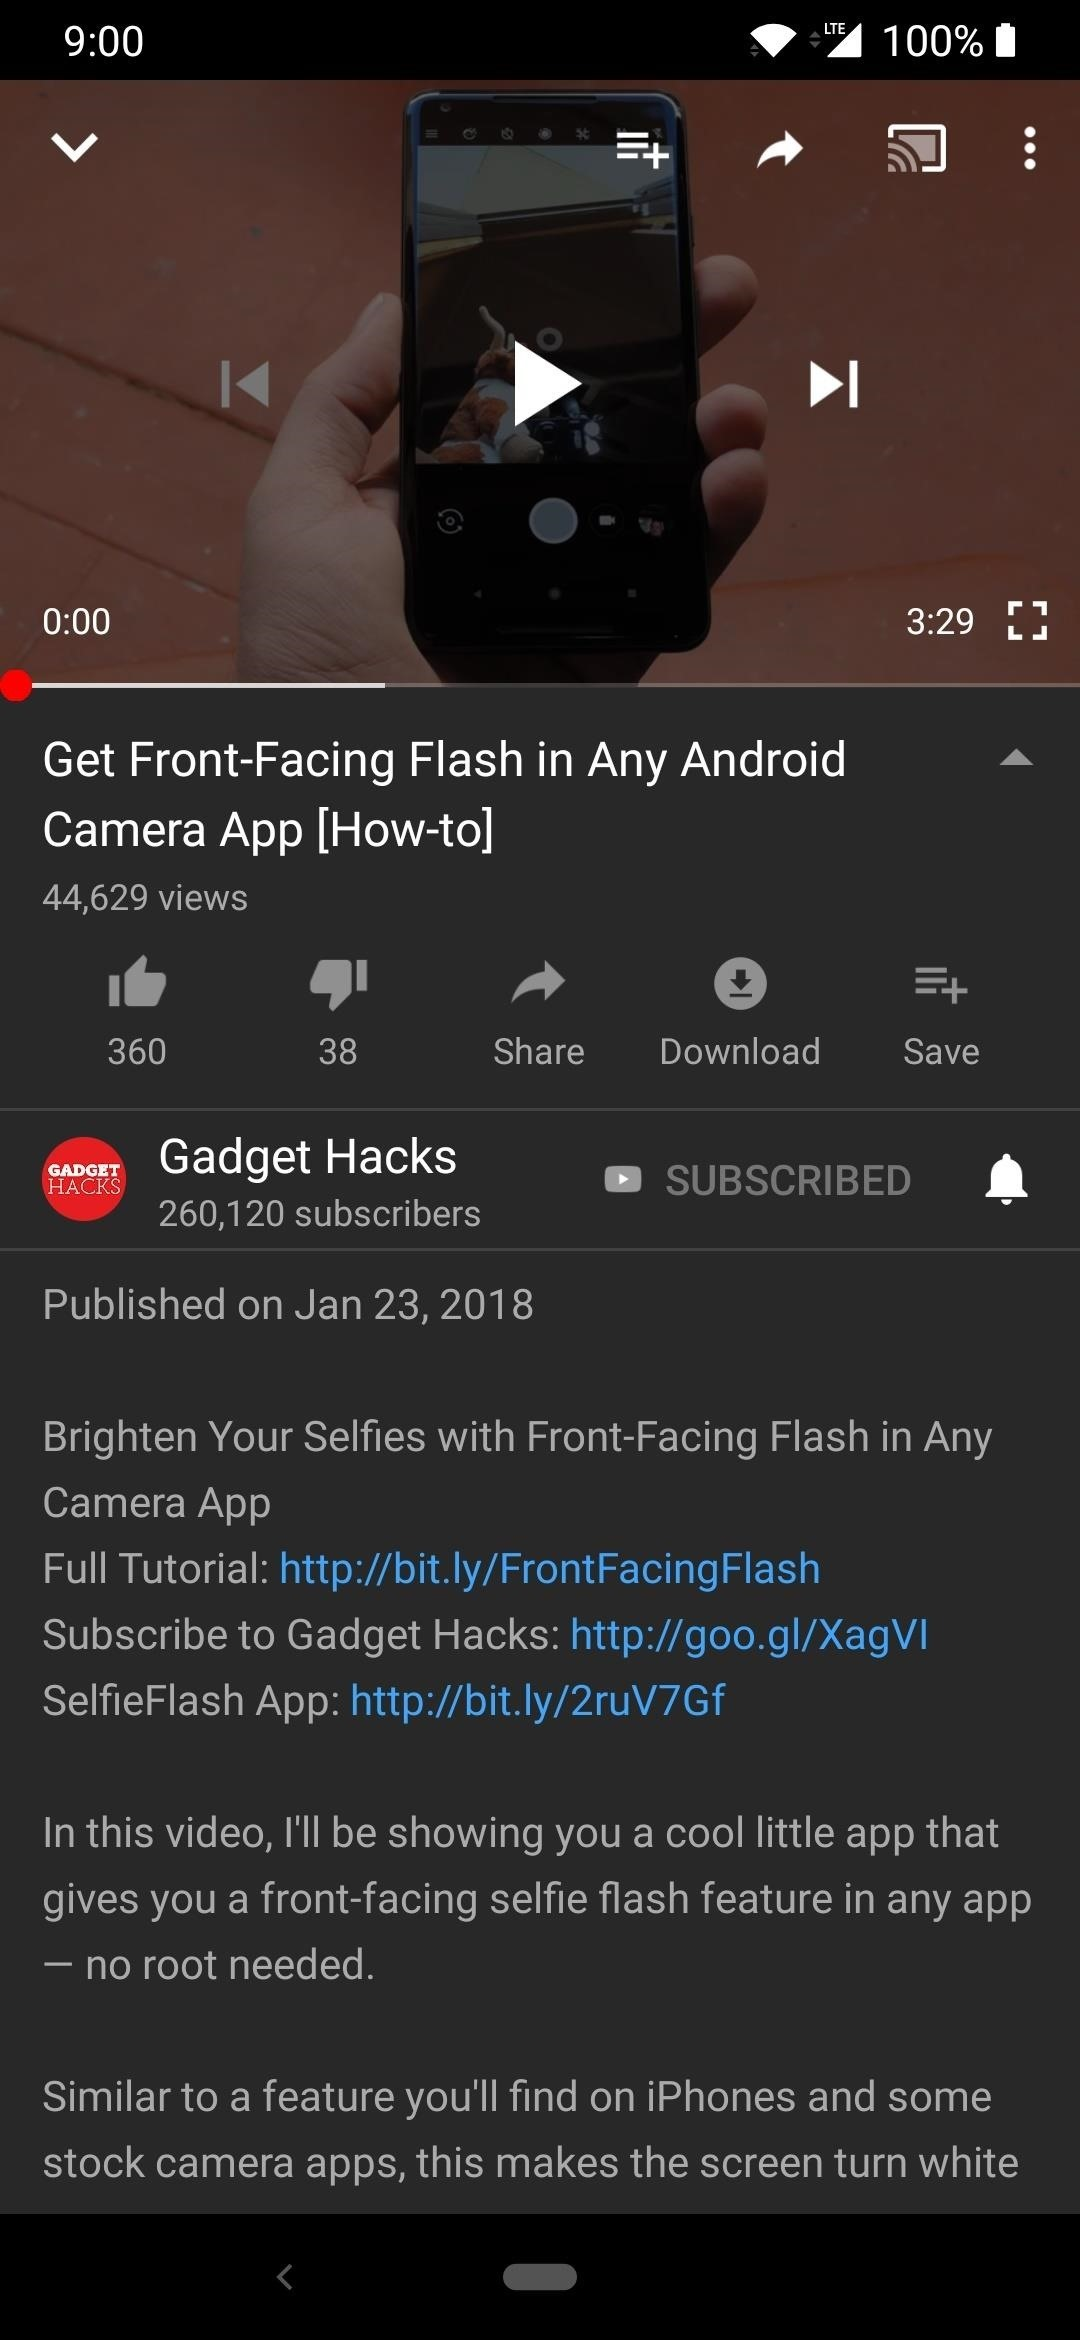 Save Up to 60% Battery Life by Enabling Dark Mode in the YouTube App